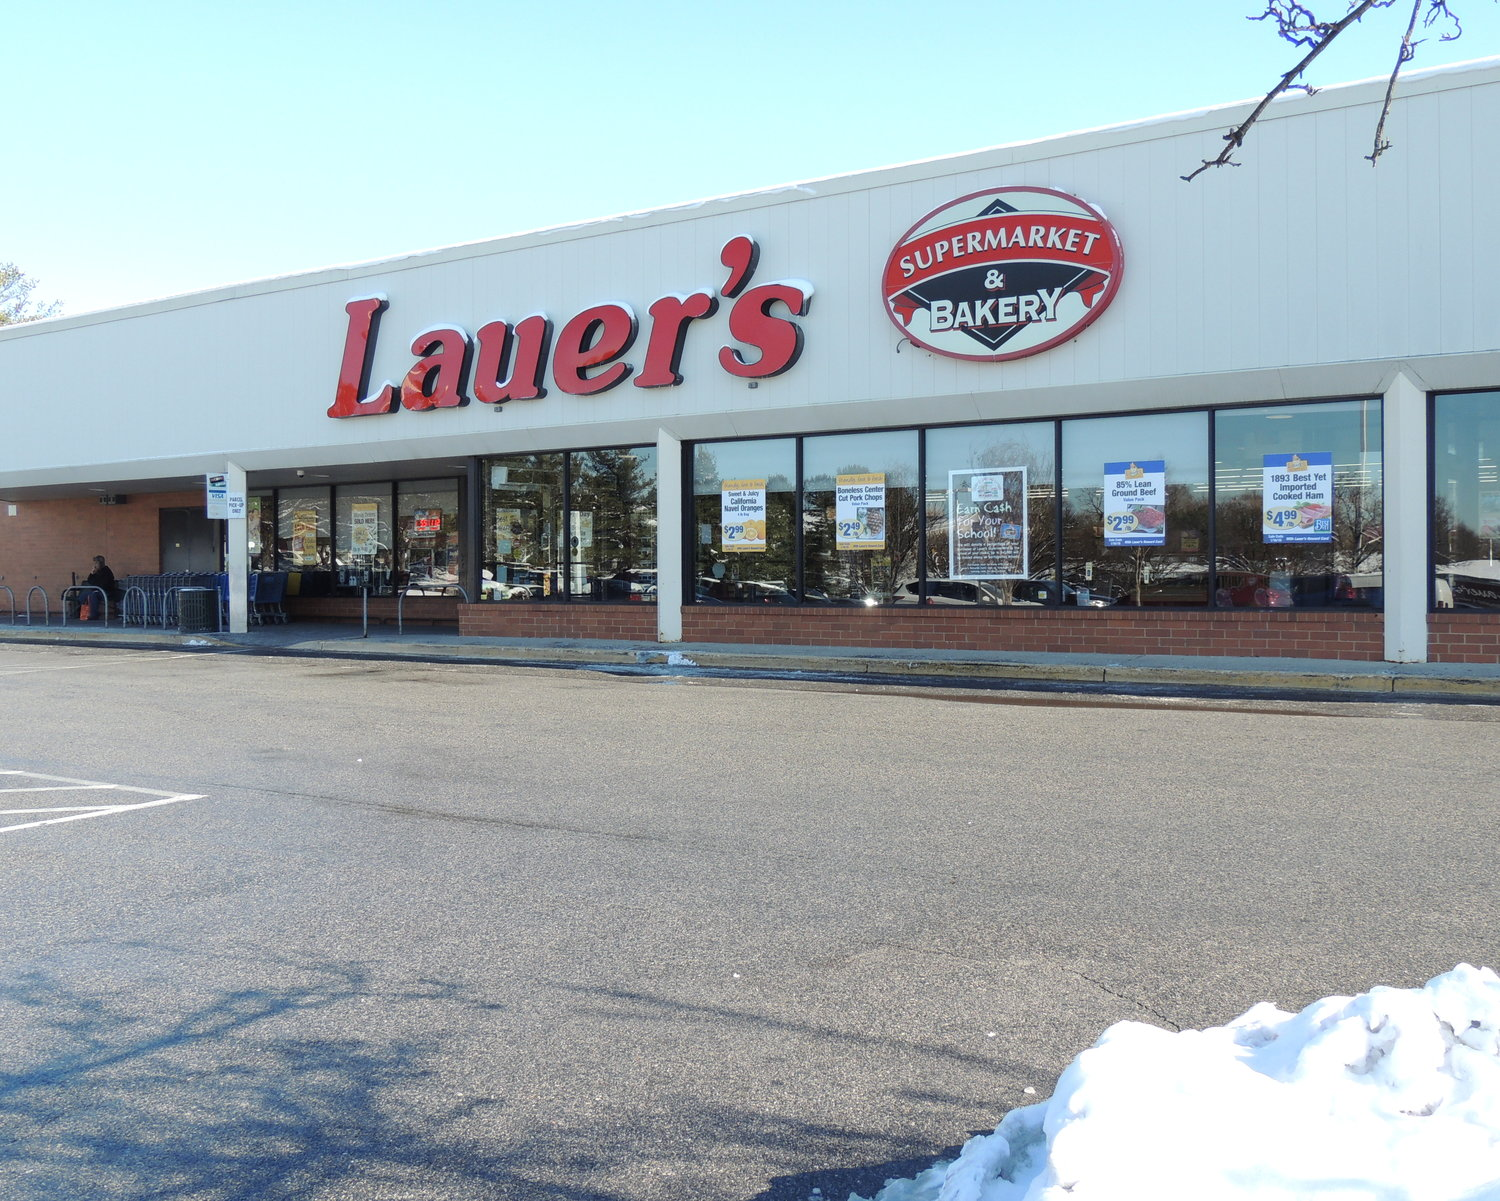 At 40,000 square feet, Lauer's Supermarket & Bakery on Edwin Raynor Boulevard is three times the size of the original store, which was located at the intersection of Mountain and Tick Neck roads.